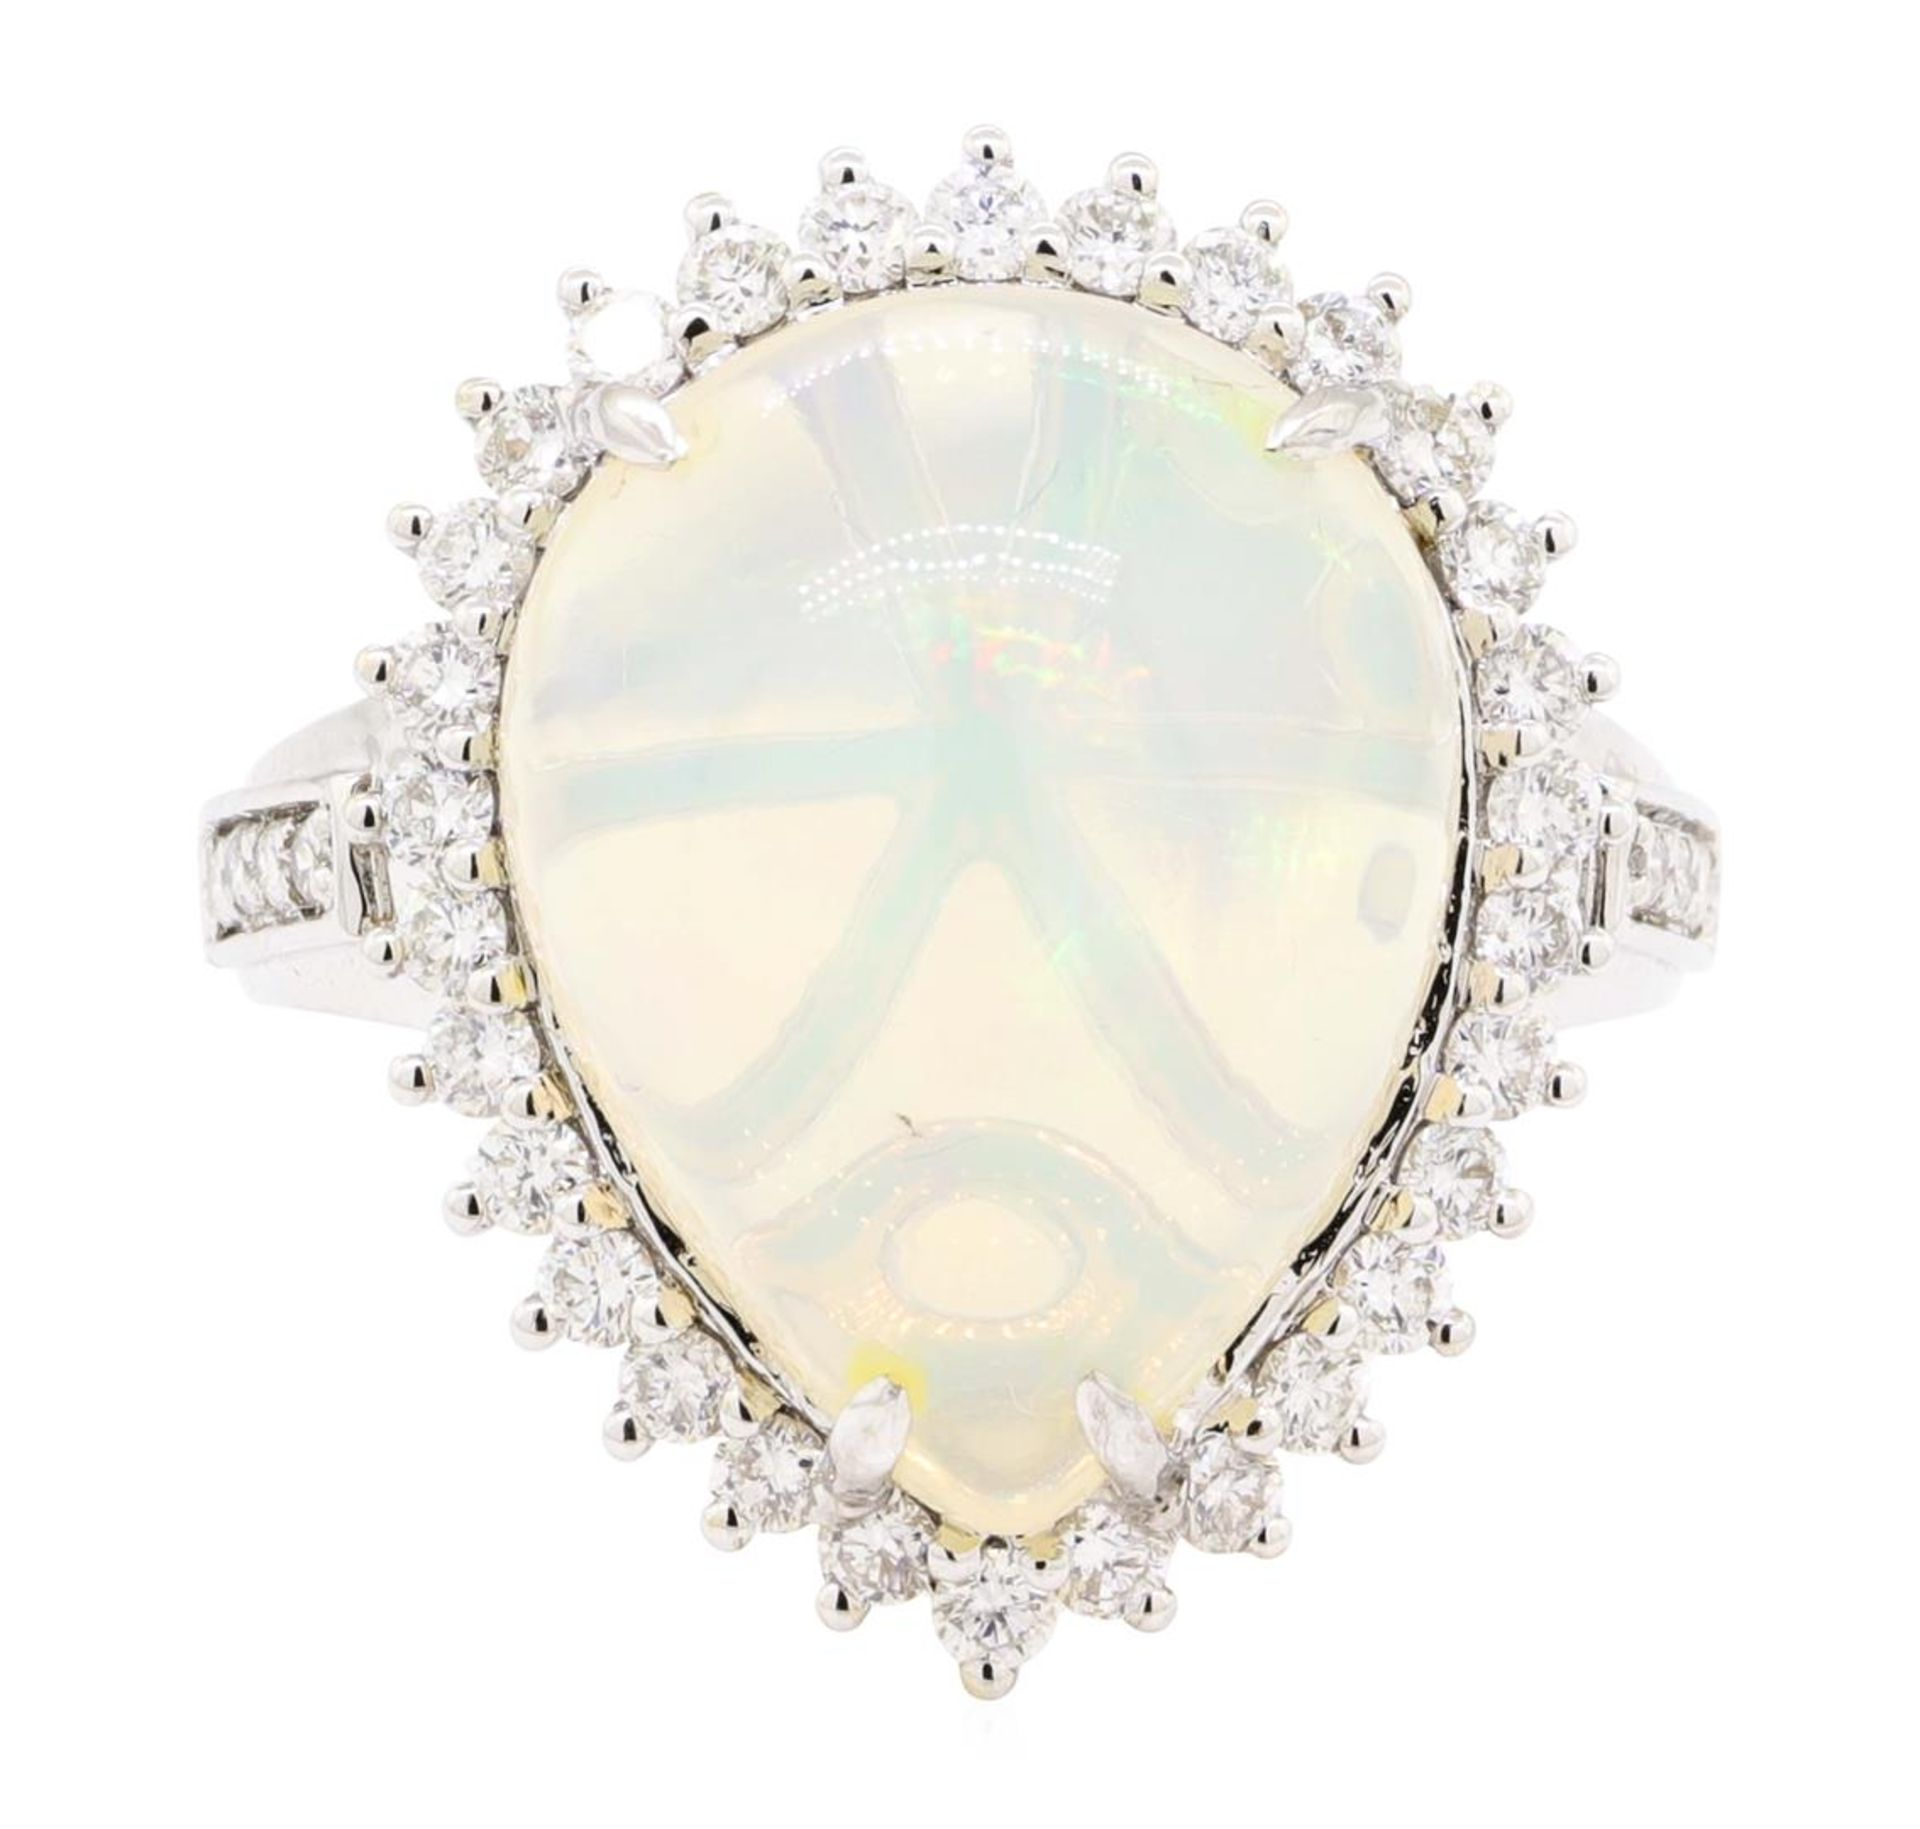 9.12 ctw Cabochon Pear Crystal Opal And Round Brilliant Cut Diamond Ring - 14KT - Image 2 of 5